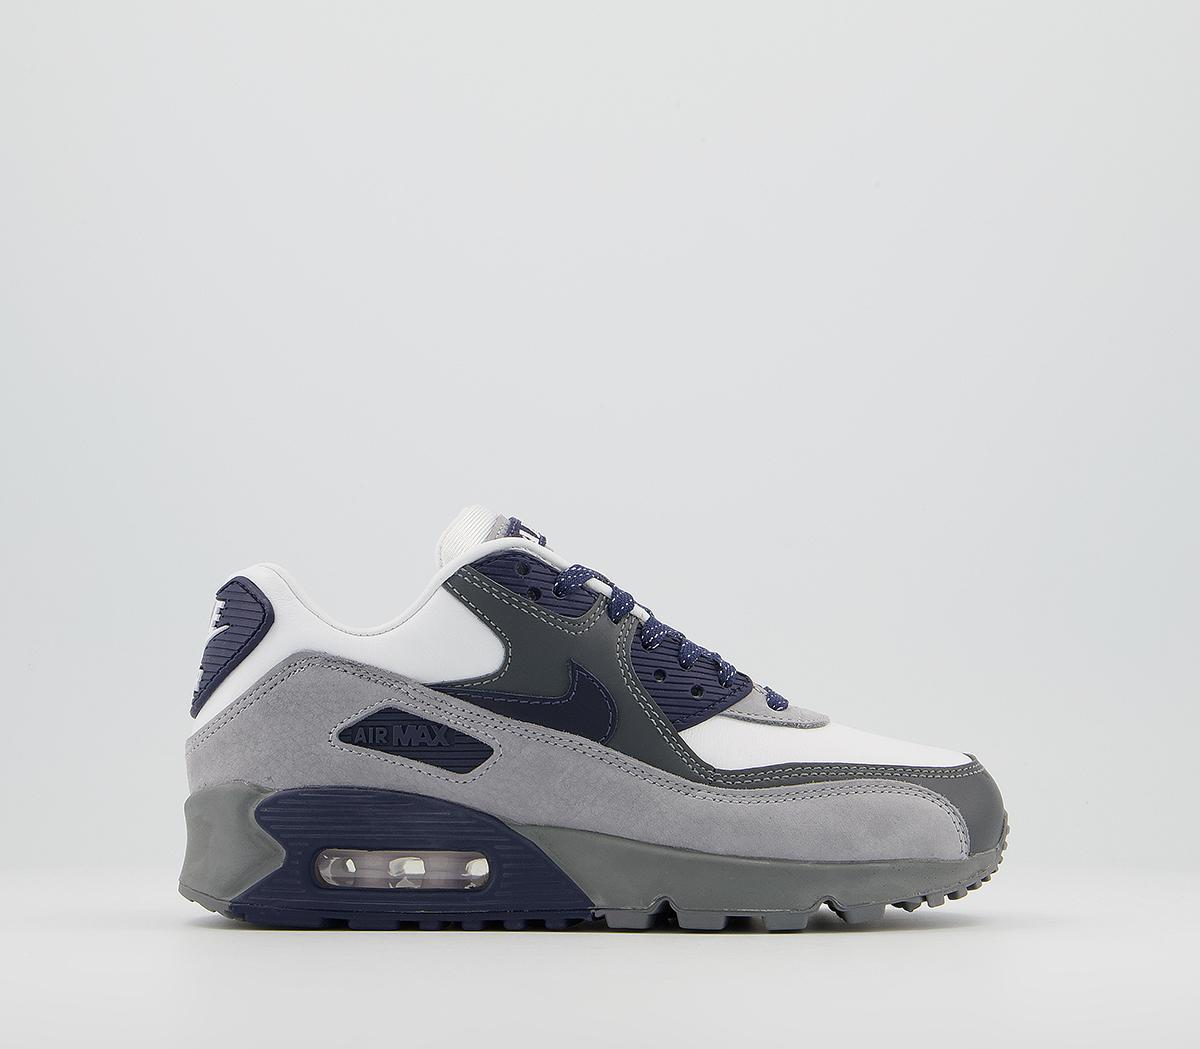 Air Max 90 Trainers